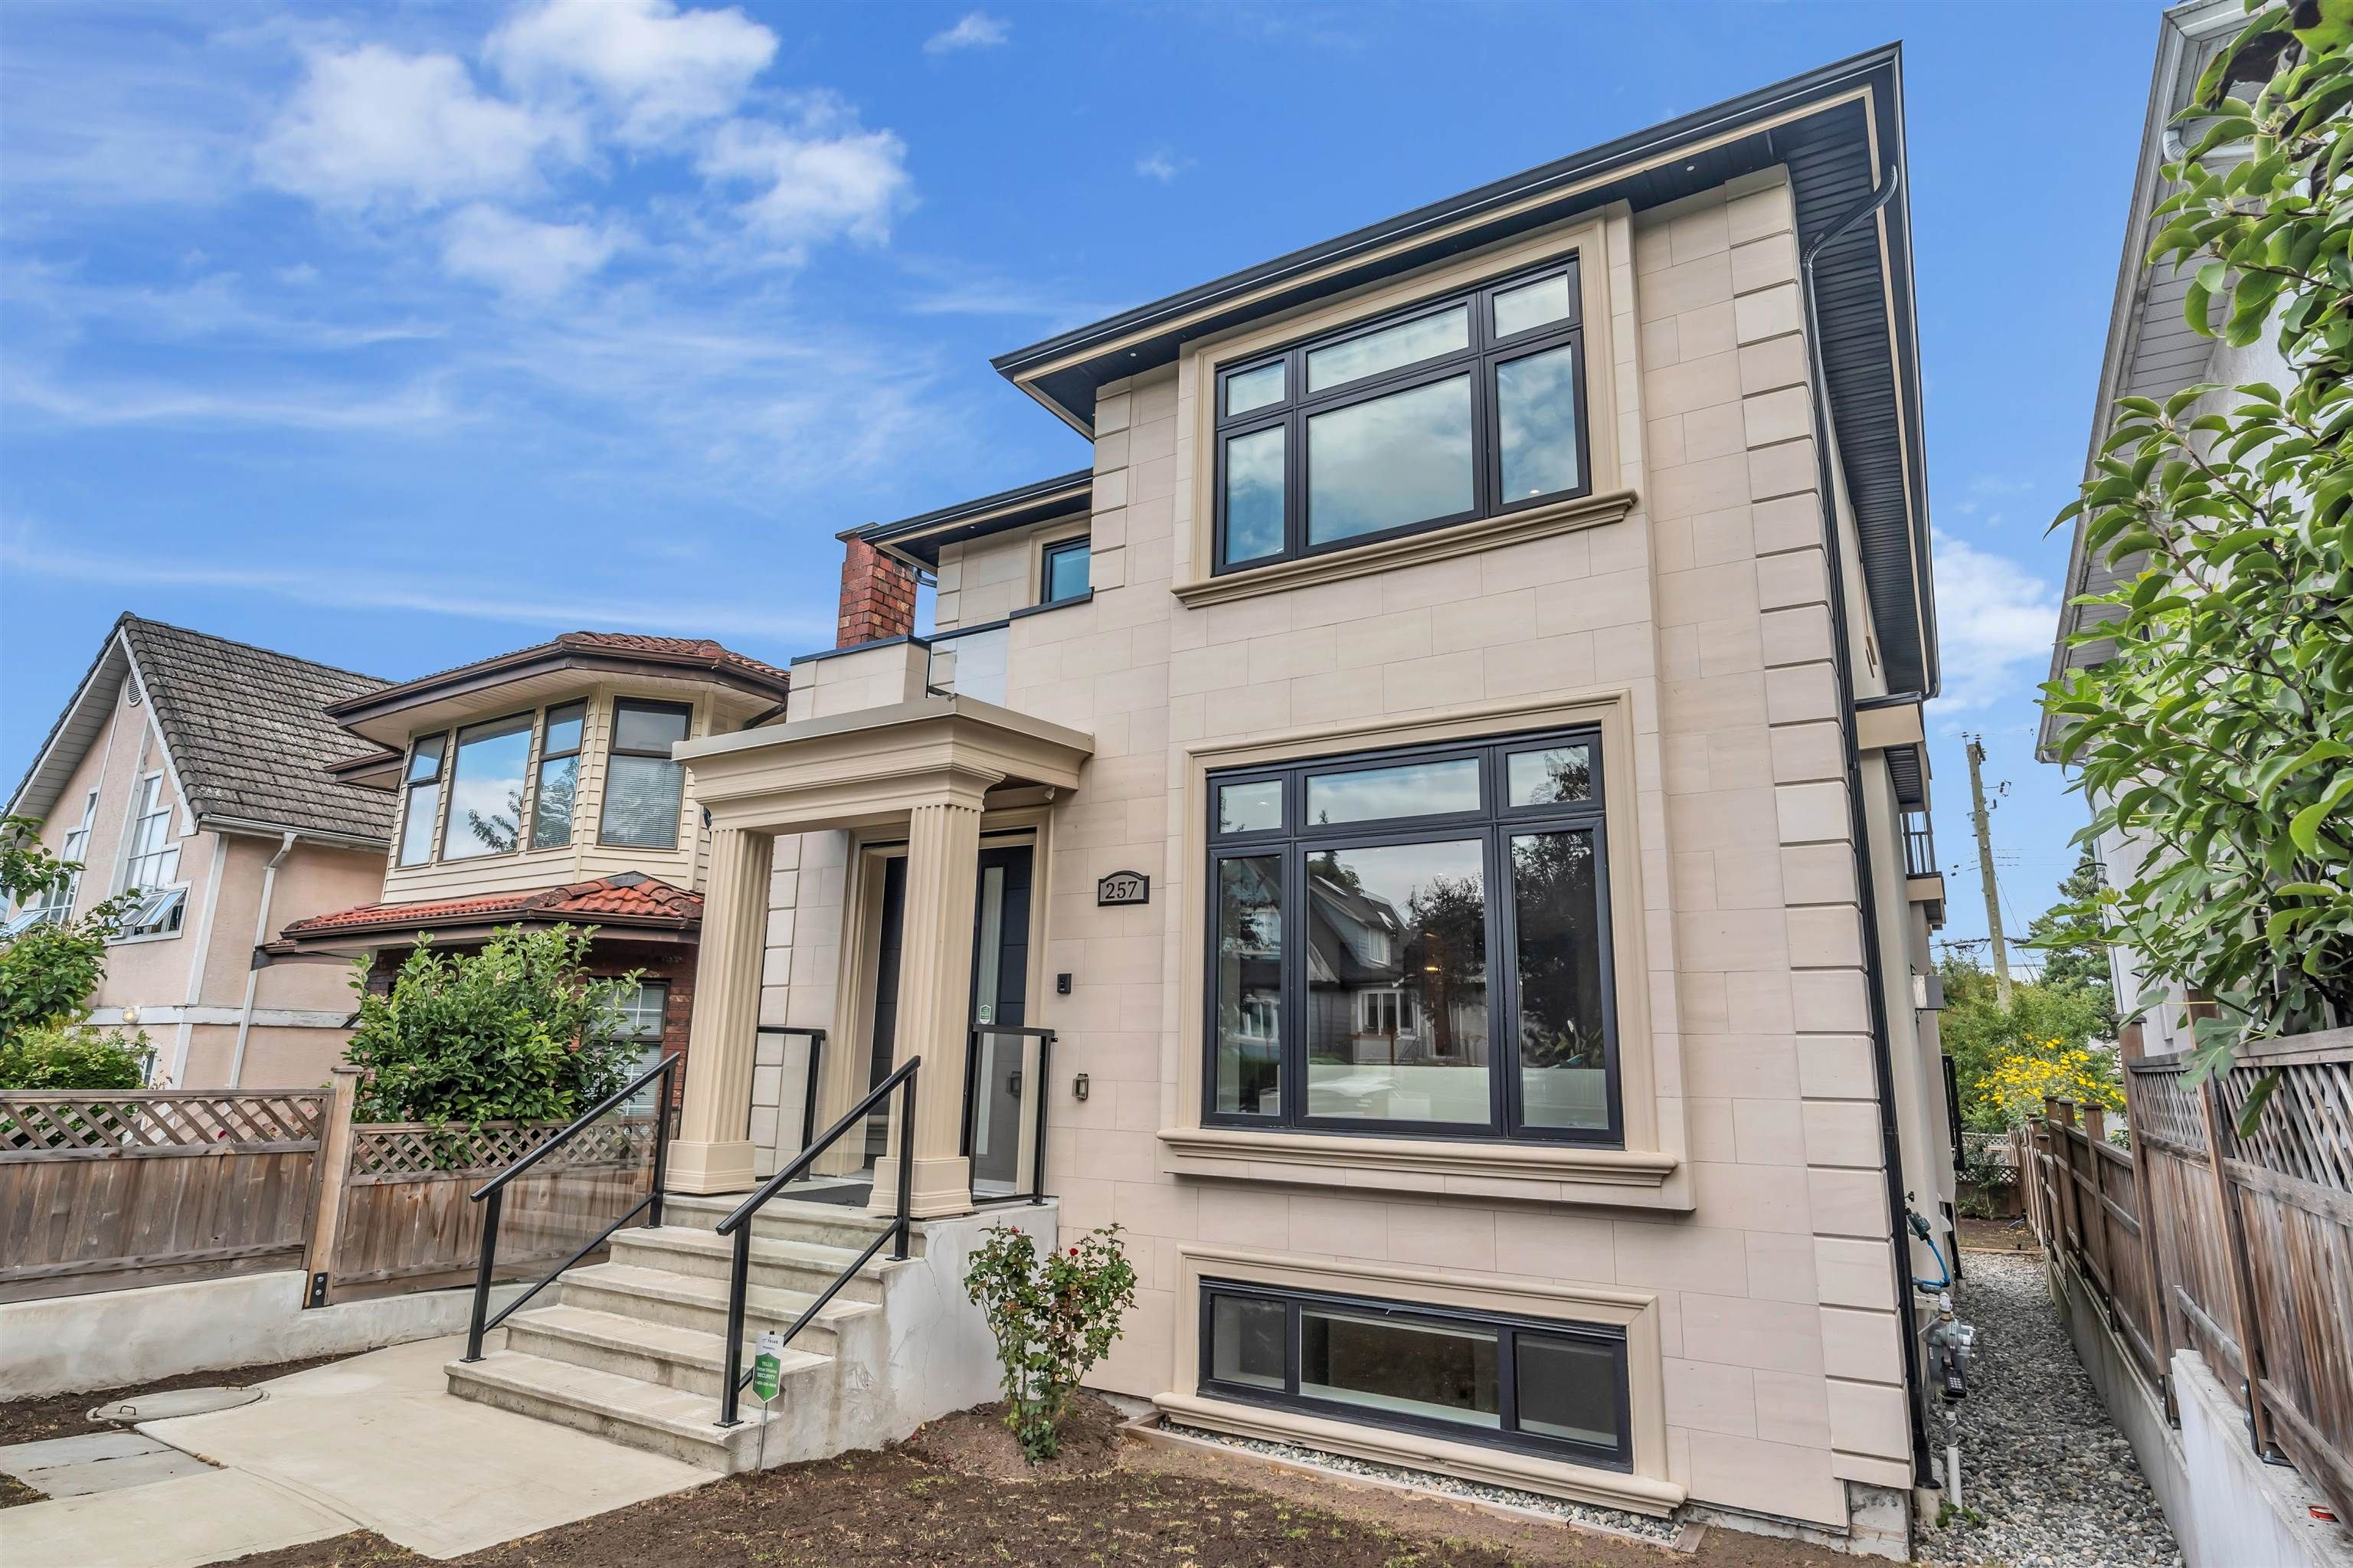 Main Photo: 257 E 38TH Avenue in Vancouver: Main House for sale (Vancouver East)  : MLS®# R2617771